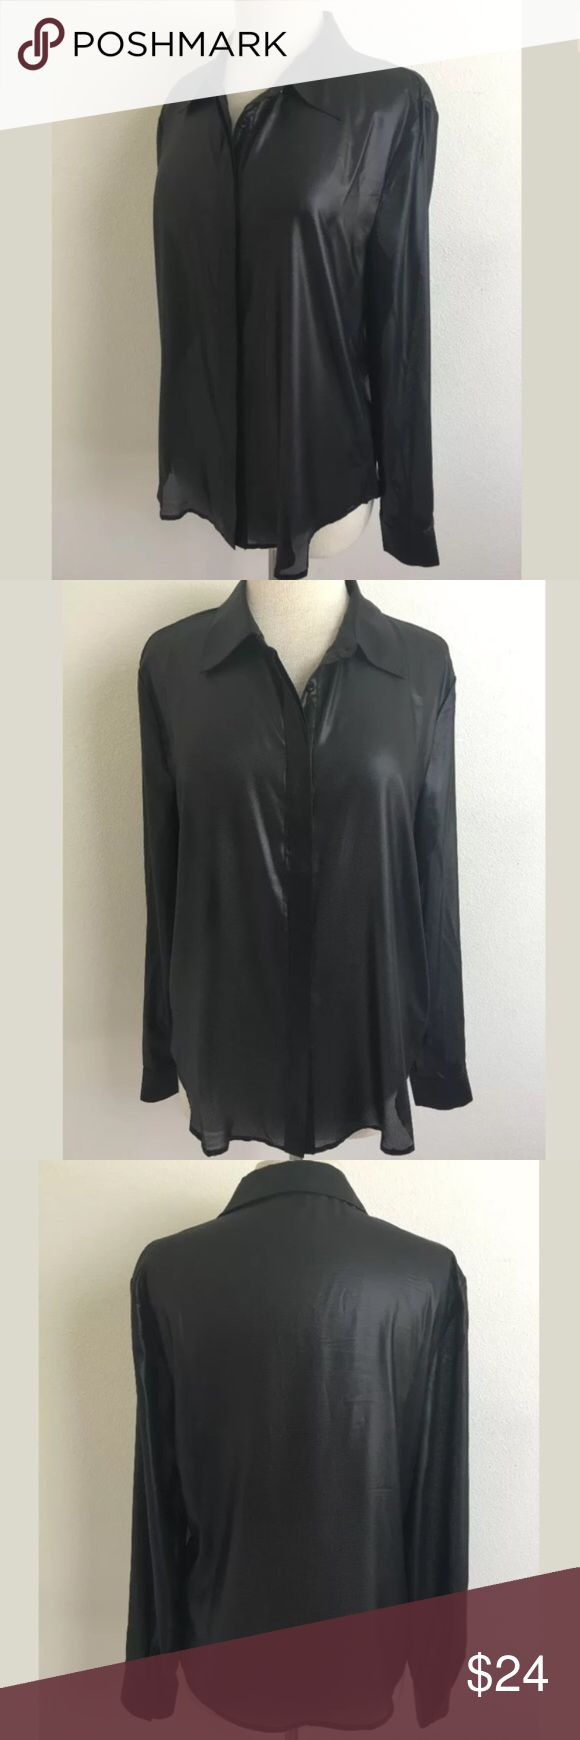 W118 by Walter Baker This shirt is sheer but the sheen of the fabric gives it such a cool leather-like look. It's great for an edgy leather look but super soft and flowy feel. It would be great for a night out paired with sexy jeans. Length Shoulder To Hem: 26 Bust: 43 Waist: 40 Fabric Content: 100% polyester W118 by Walter Baker Tops Button Down Shirts